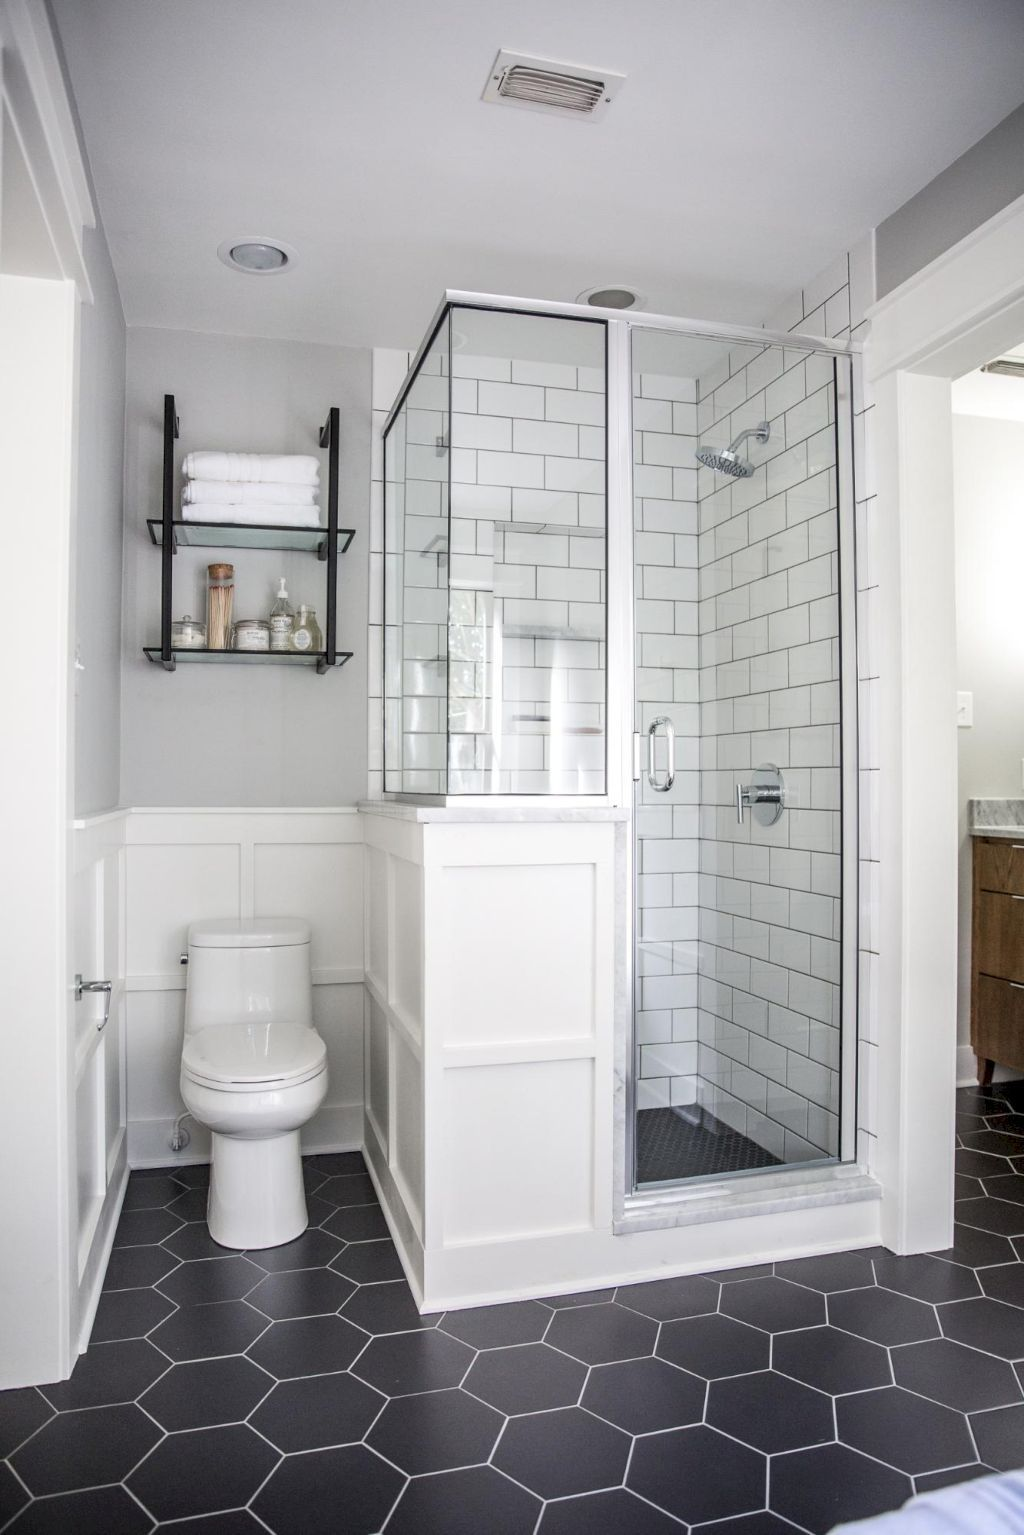 44 Awesome Master Bathroom Ideas | Pinterest | Master bathrooms ...